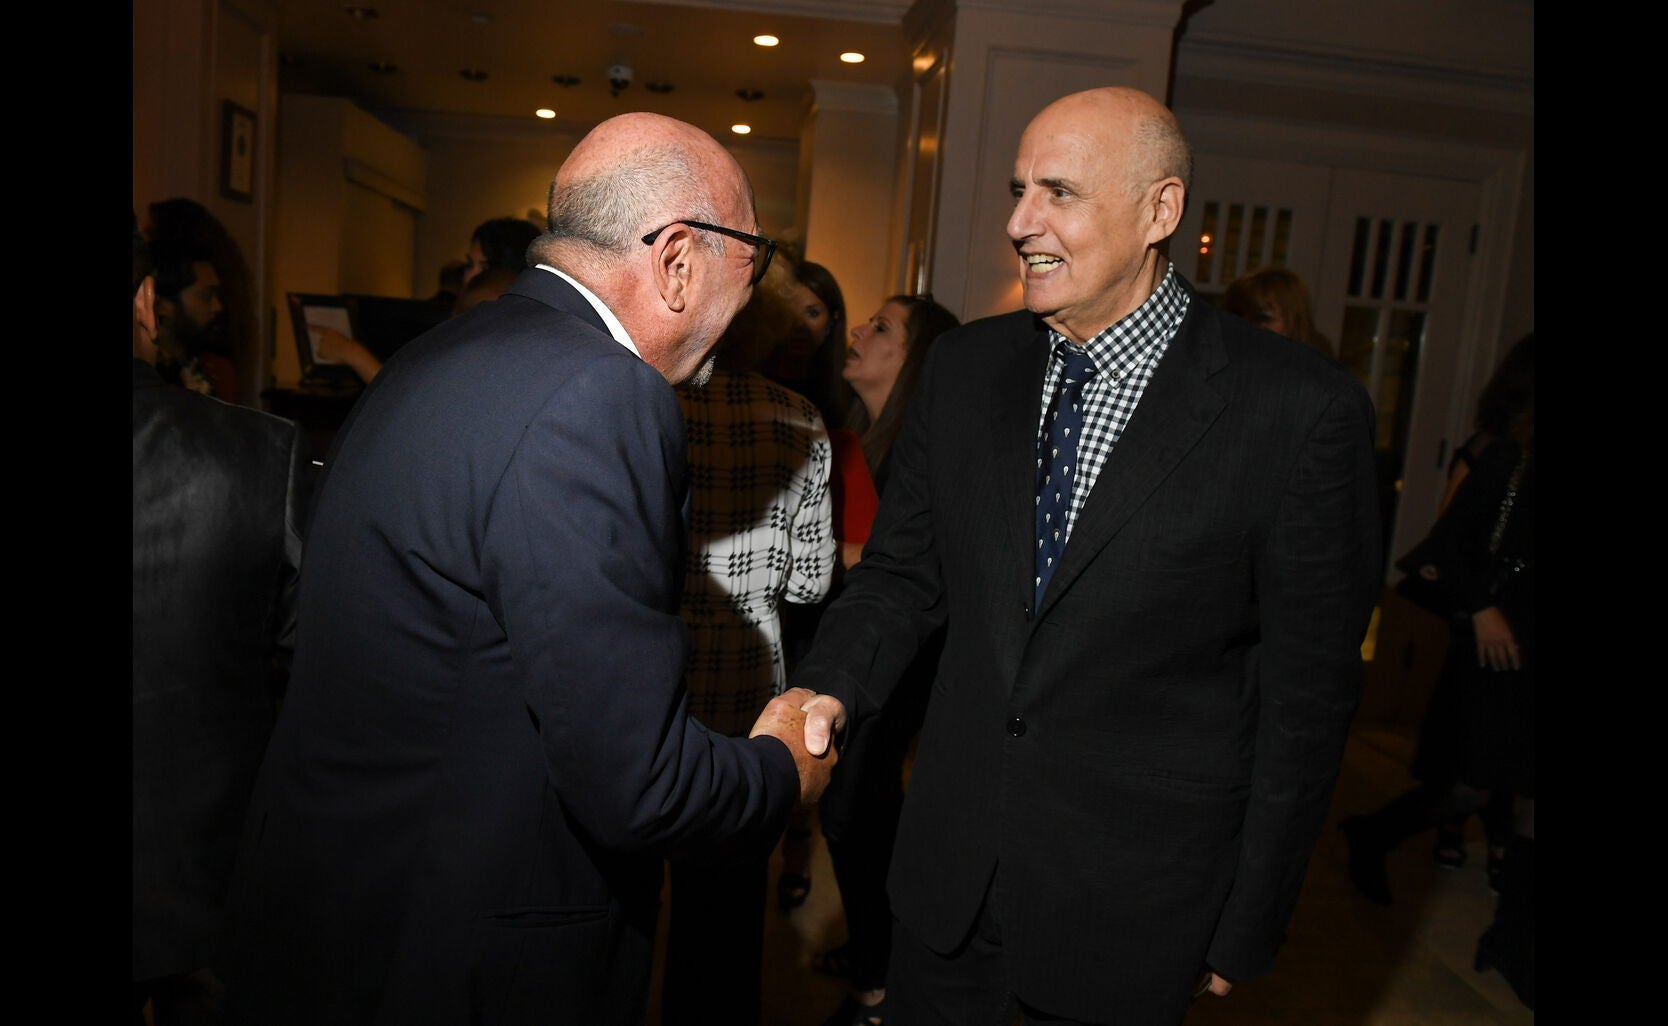 HFPA president Lorenzo Soria and director Golden Globe winner Jeffrey Tambor at the Toronto 2016 HFPA party